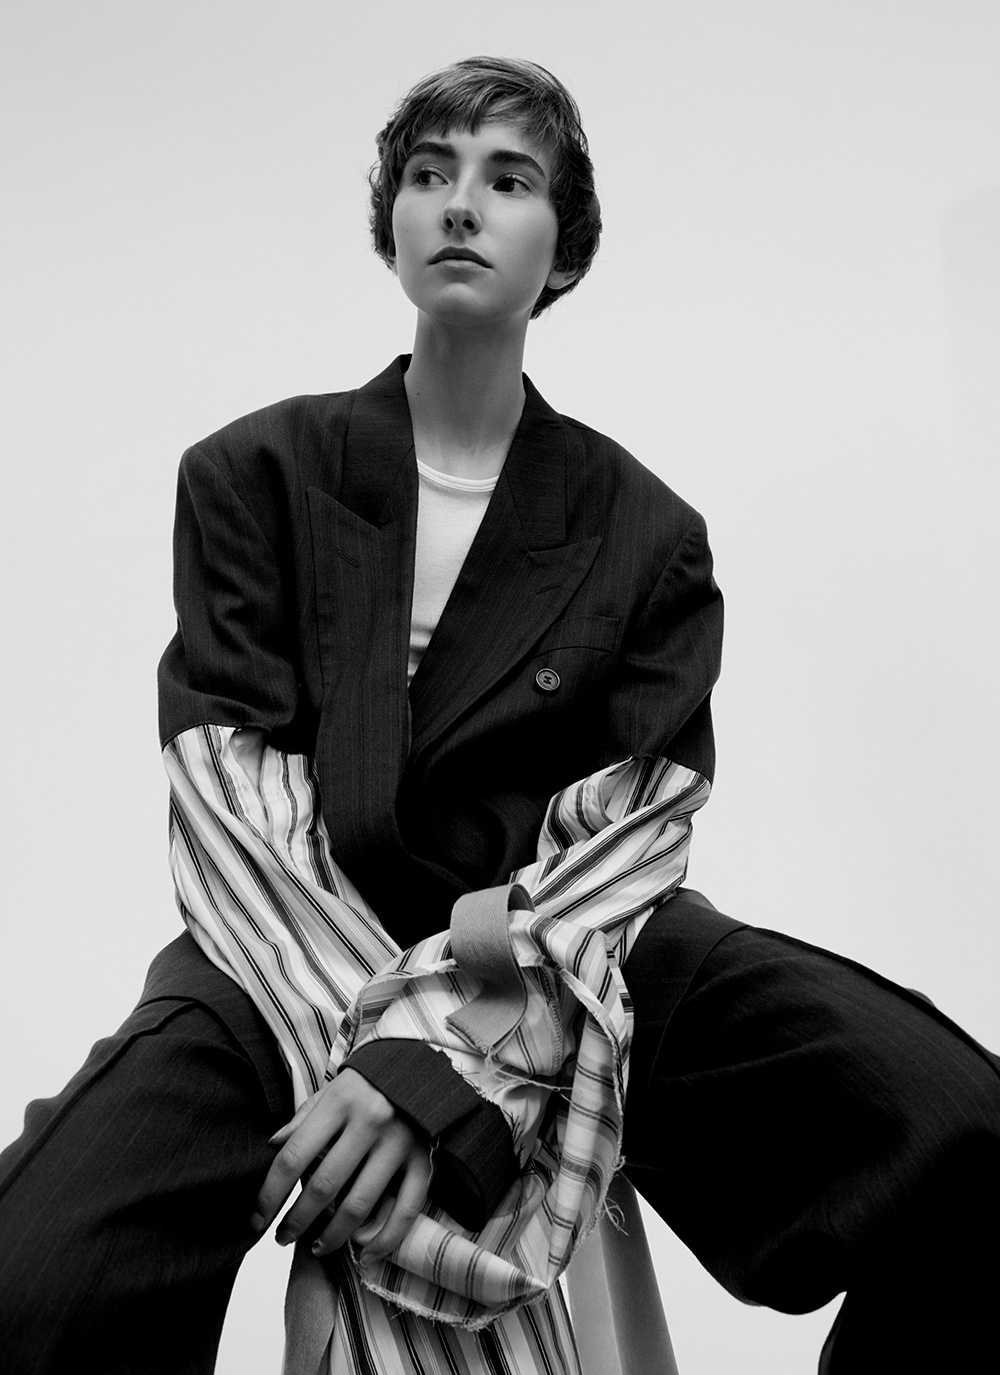 Black and white image by Ricardo Beas of model Mary Tish in oversized shirt for MONROWE Magazine